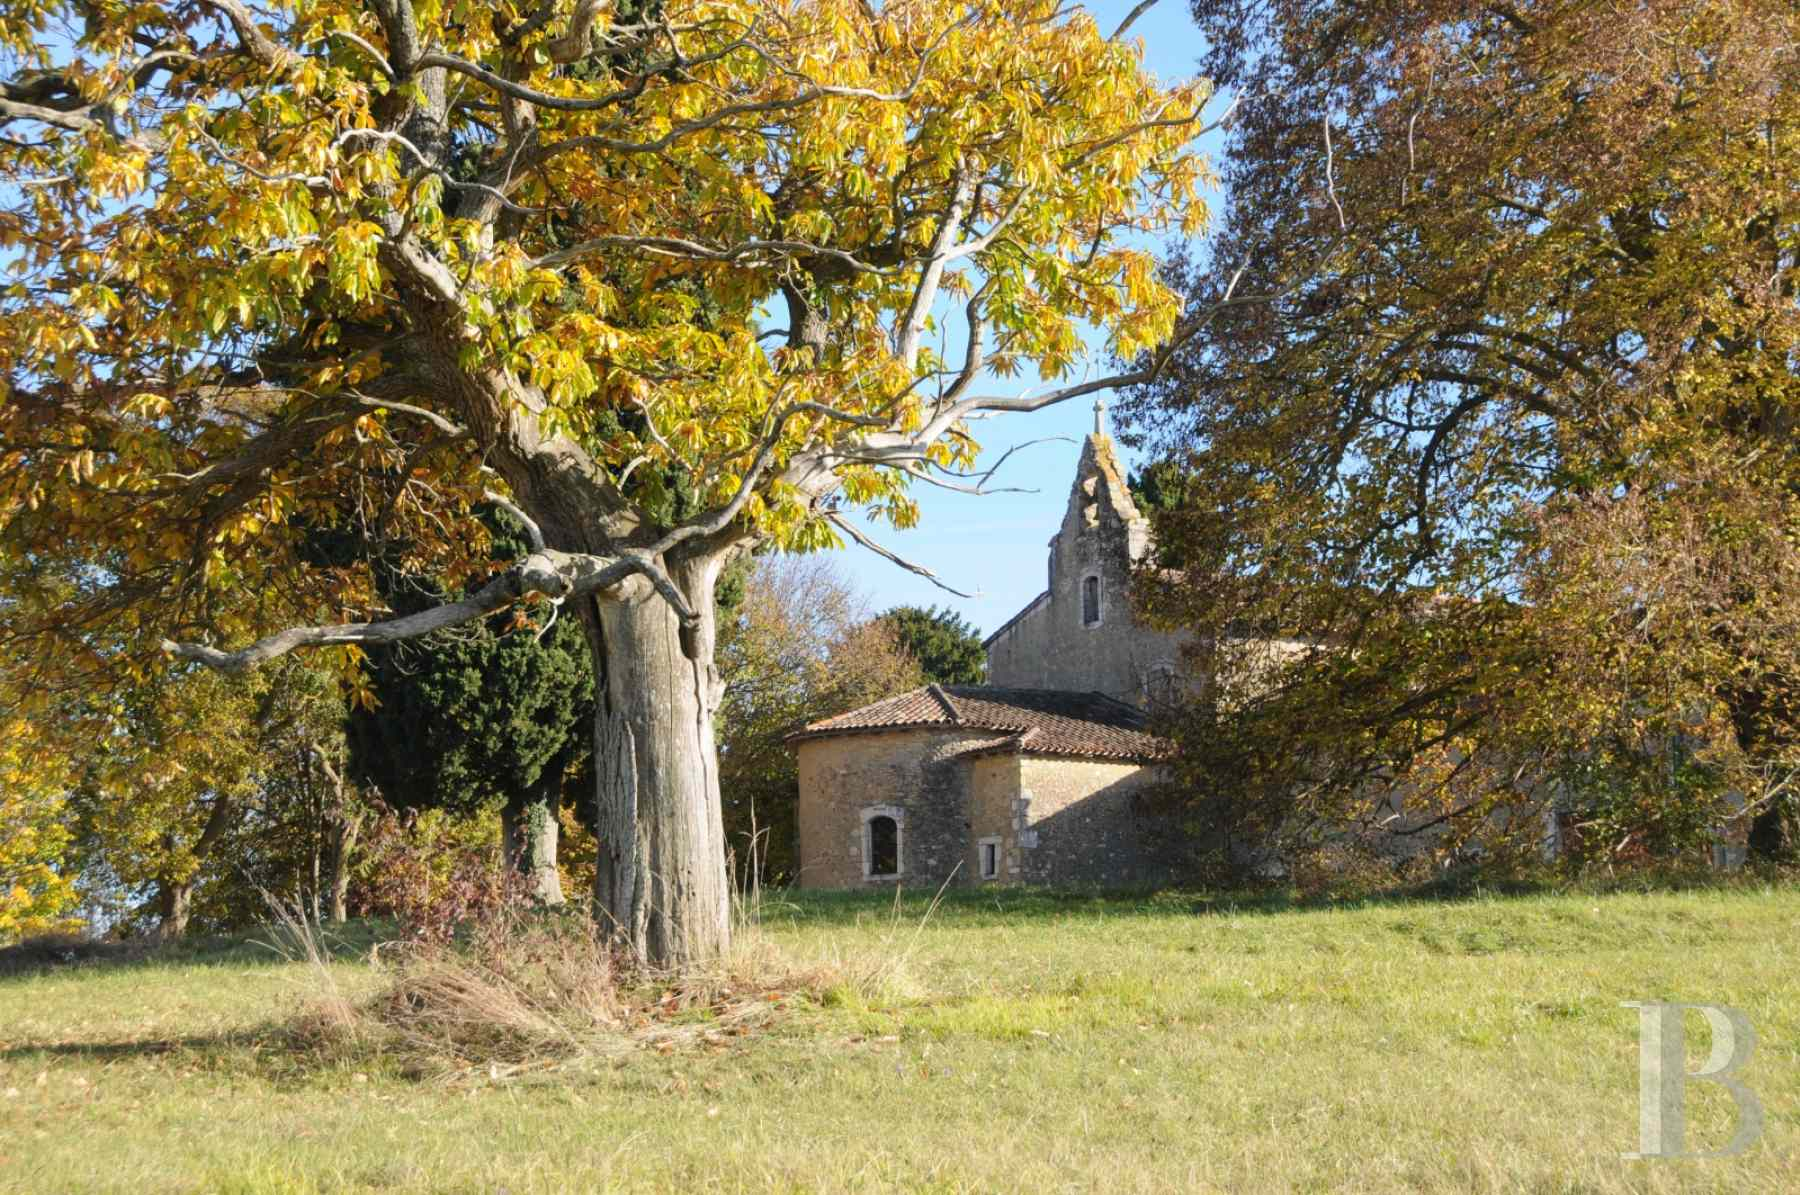 property for sale France midi pyrenees residences historic - 17 zoom